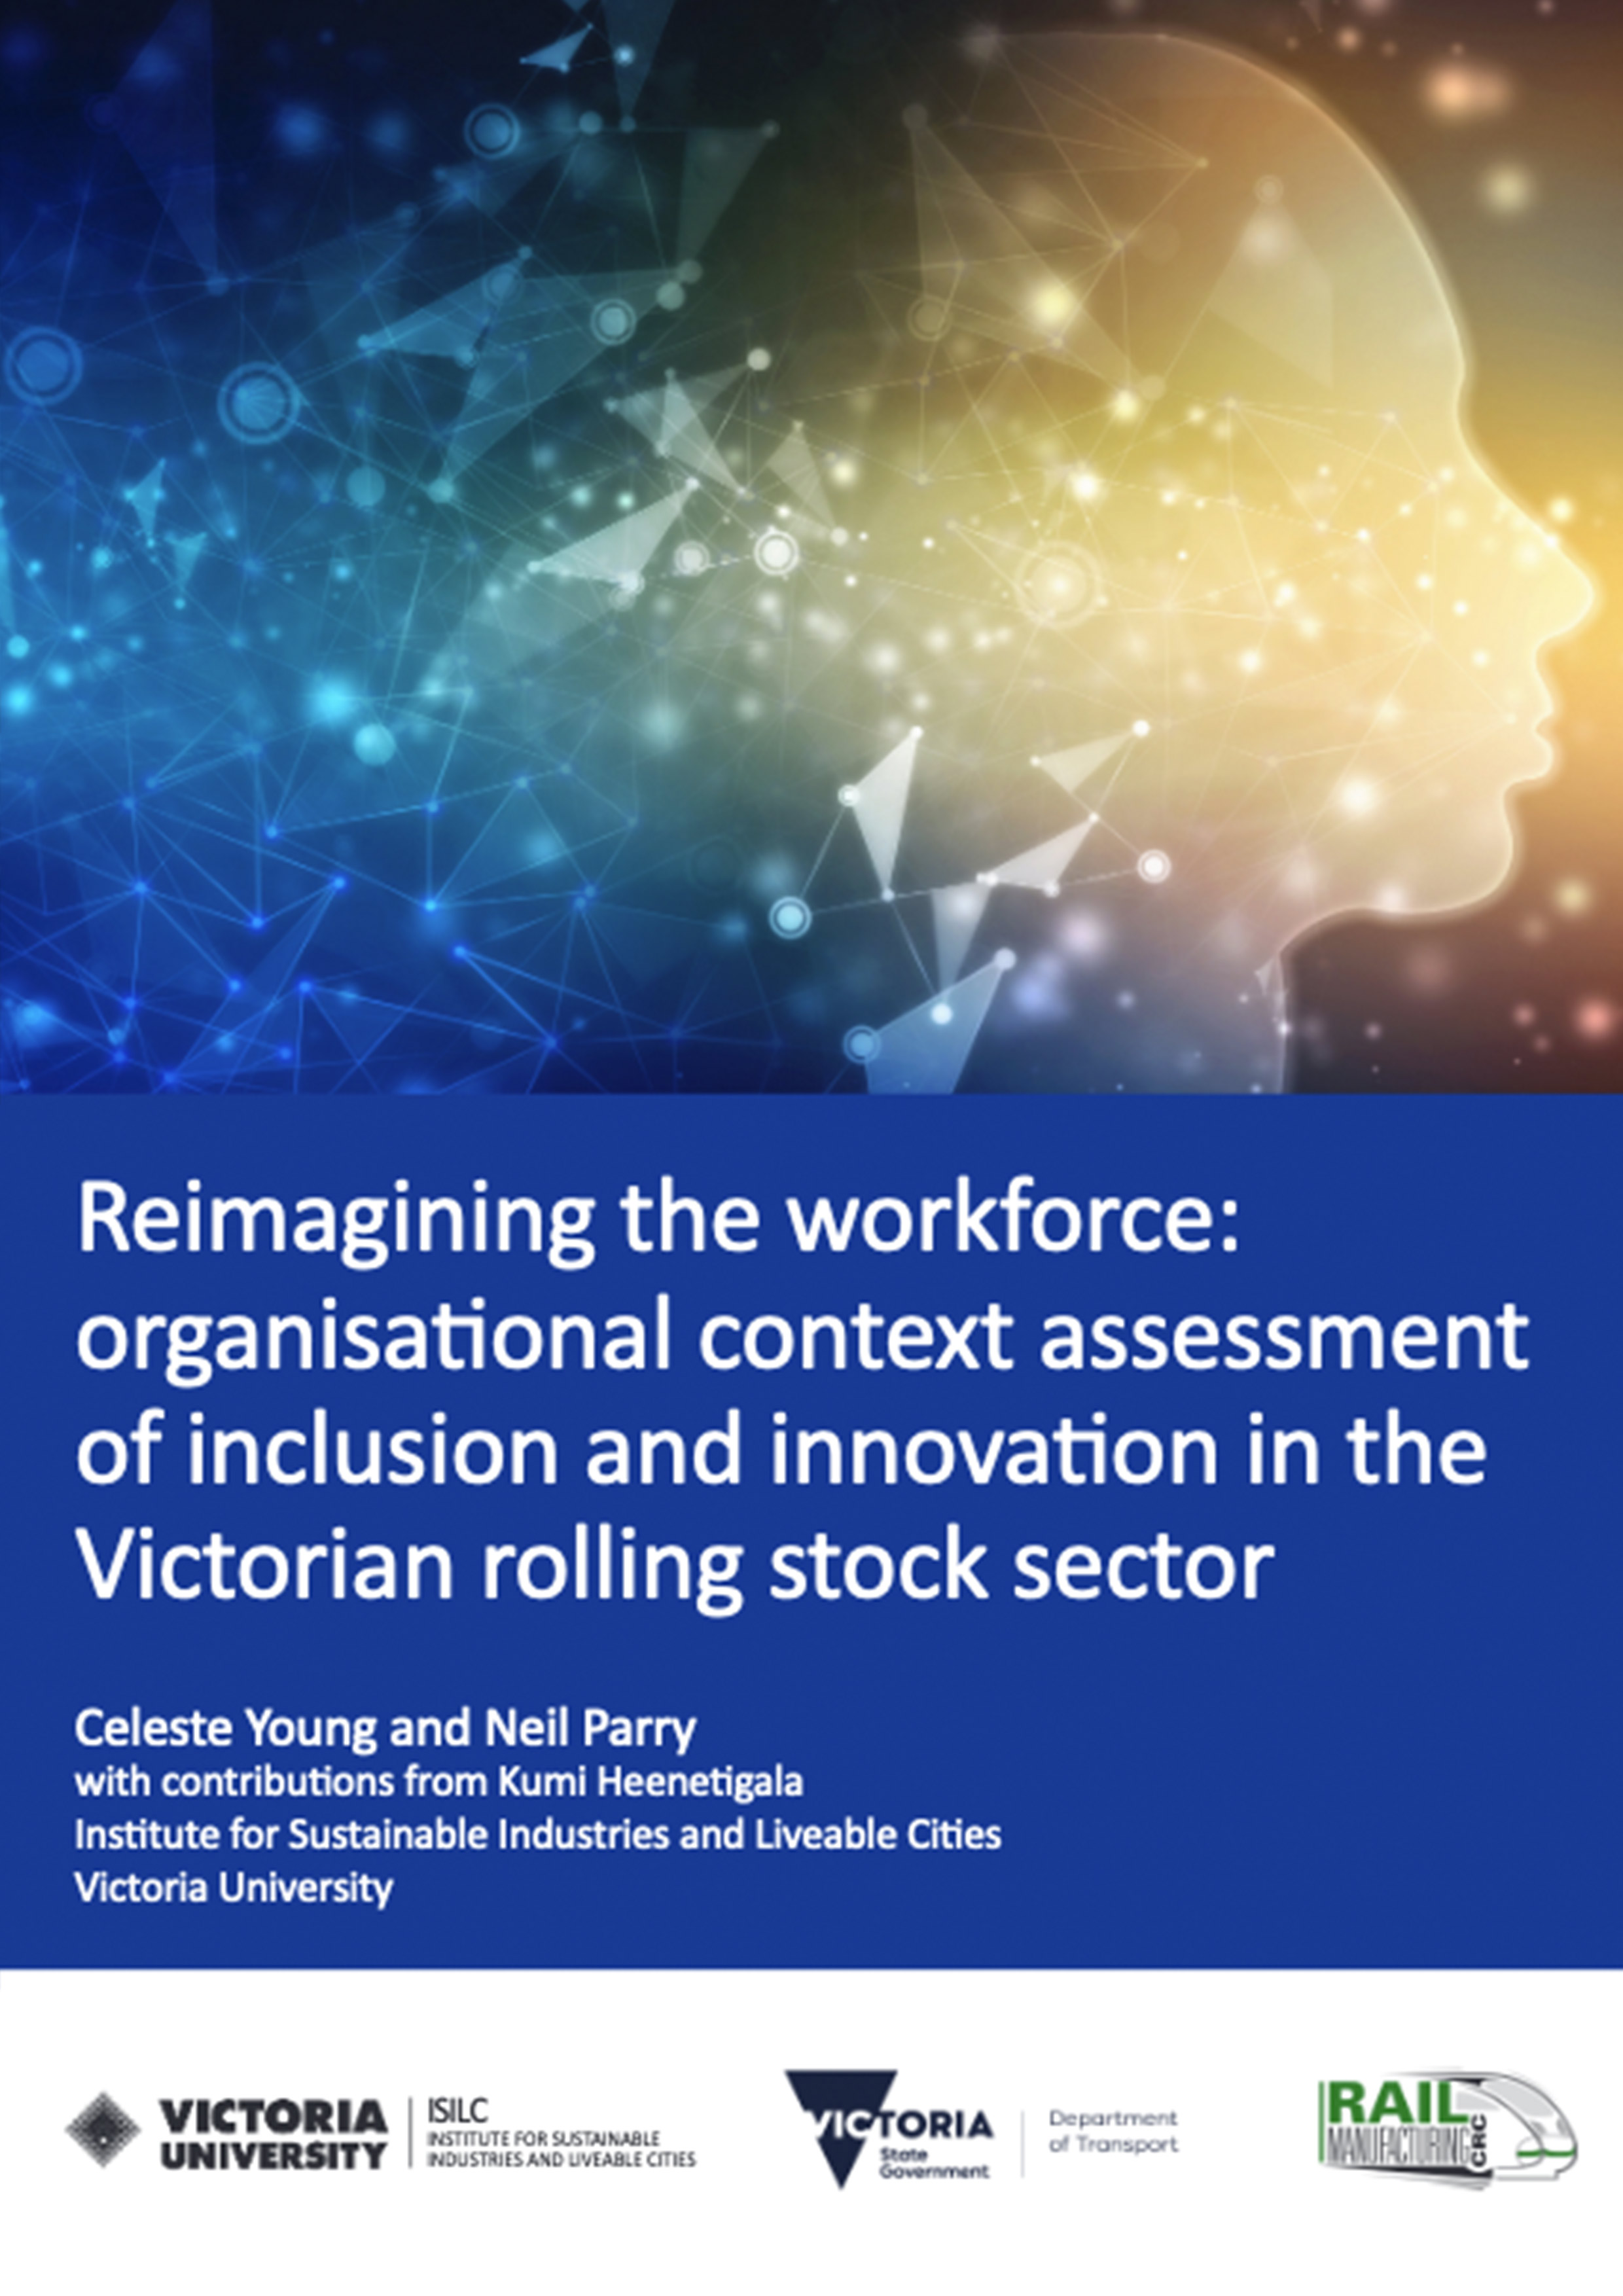 Organisational context assessment of inclusion and innovation in the Victorian rolling stock sector